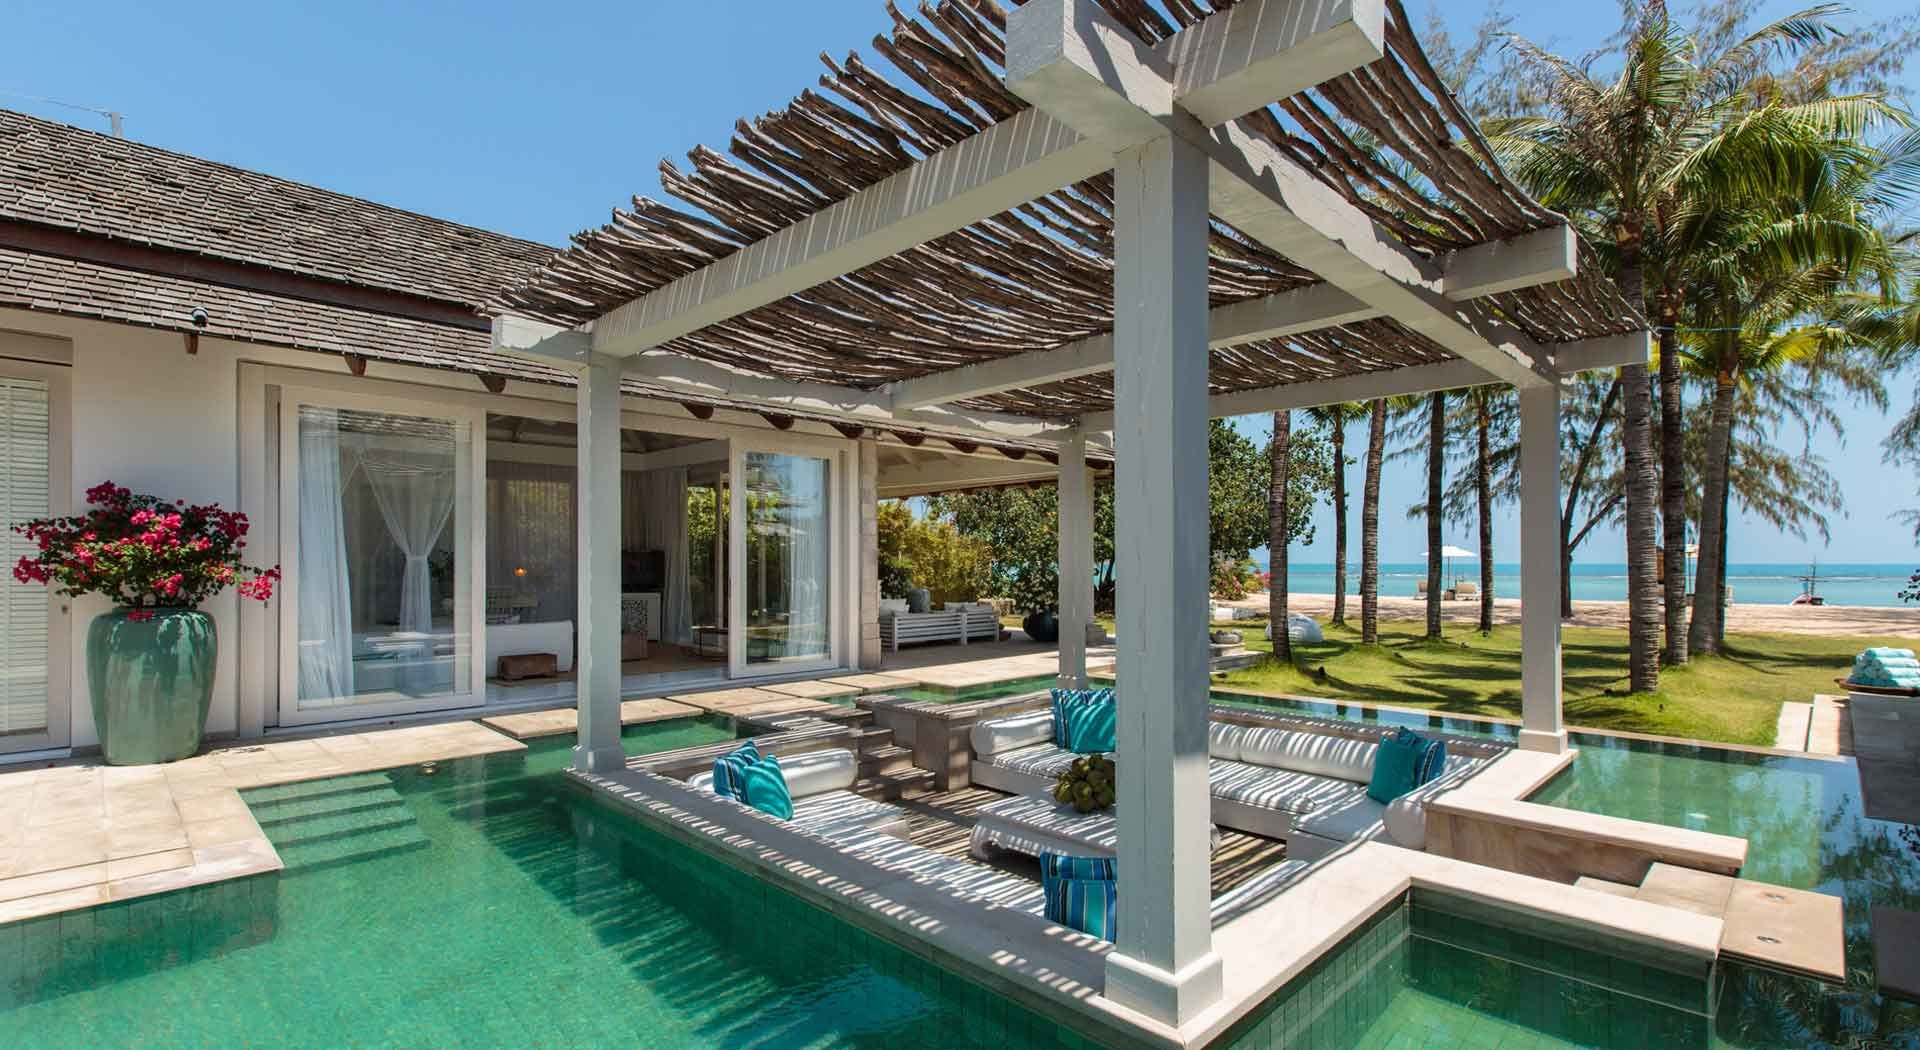 Koh samui villas best luxury holiday rentals in samui for Beautiful medium houses